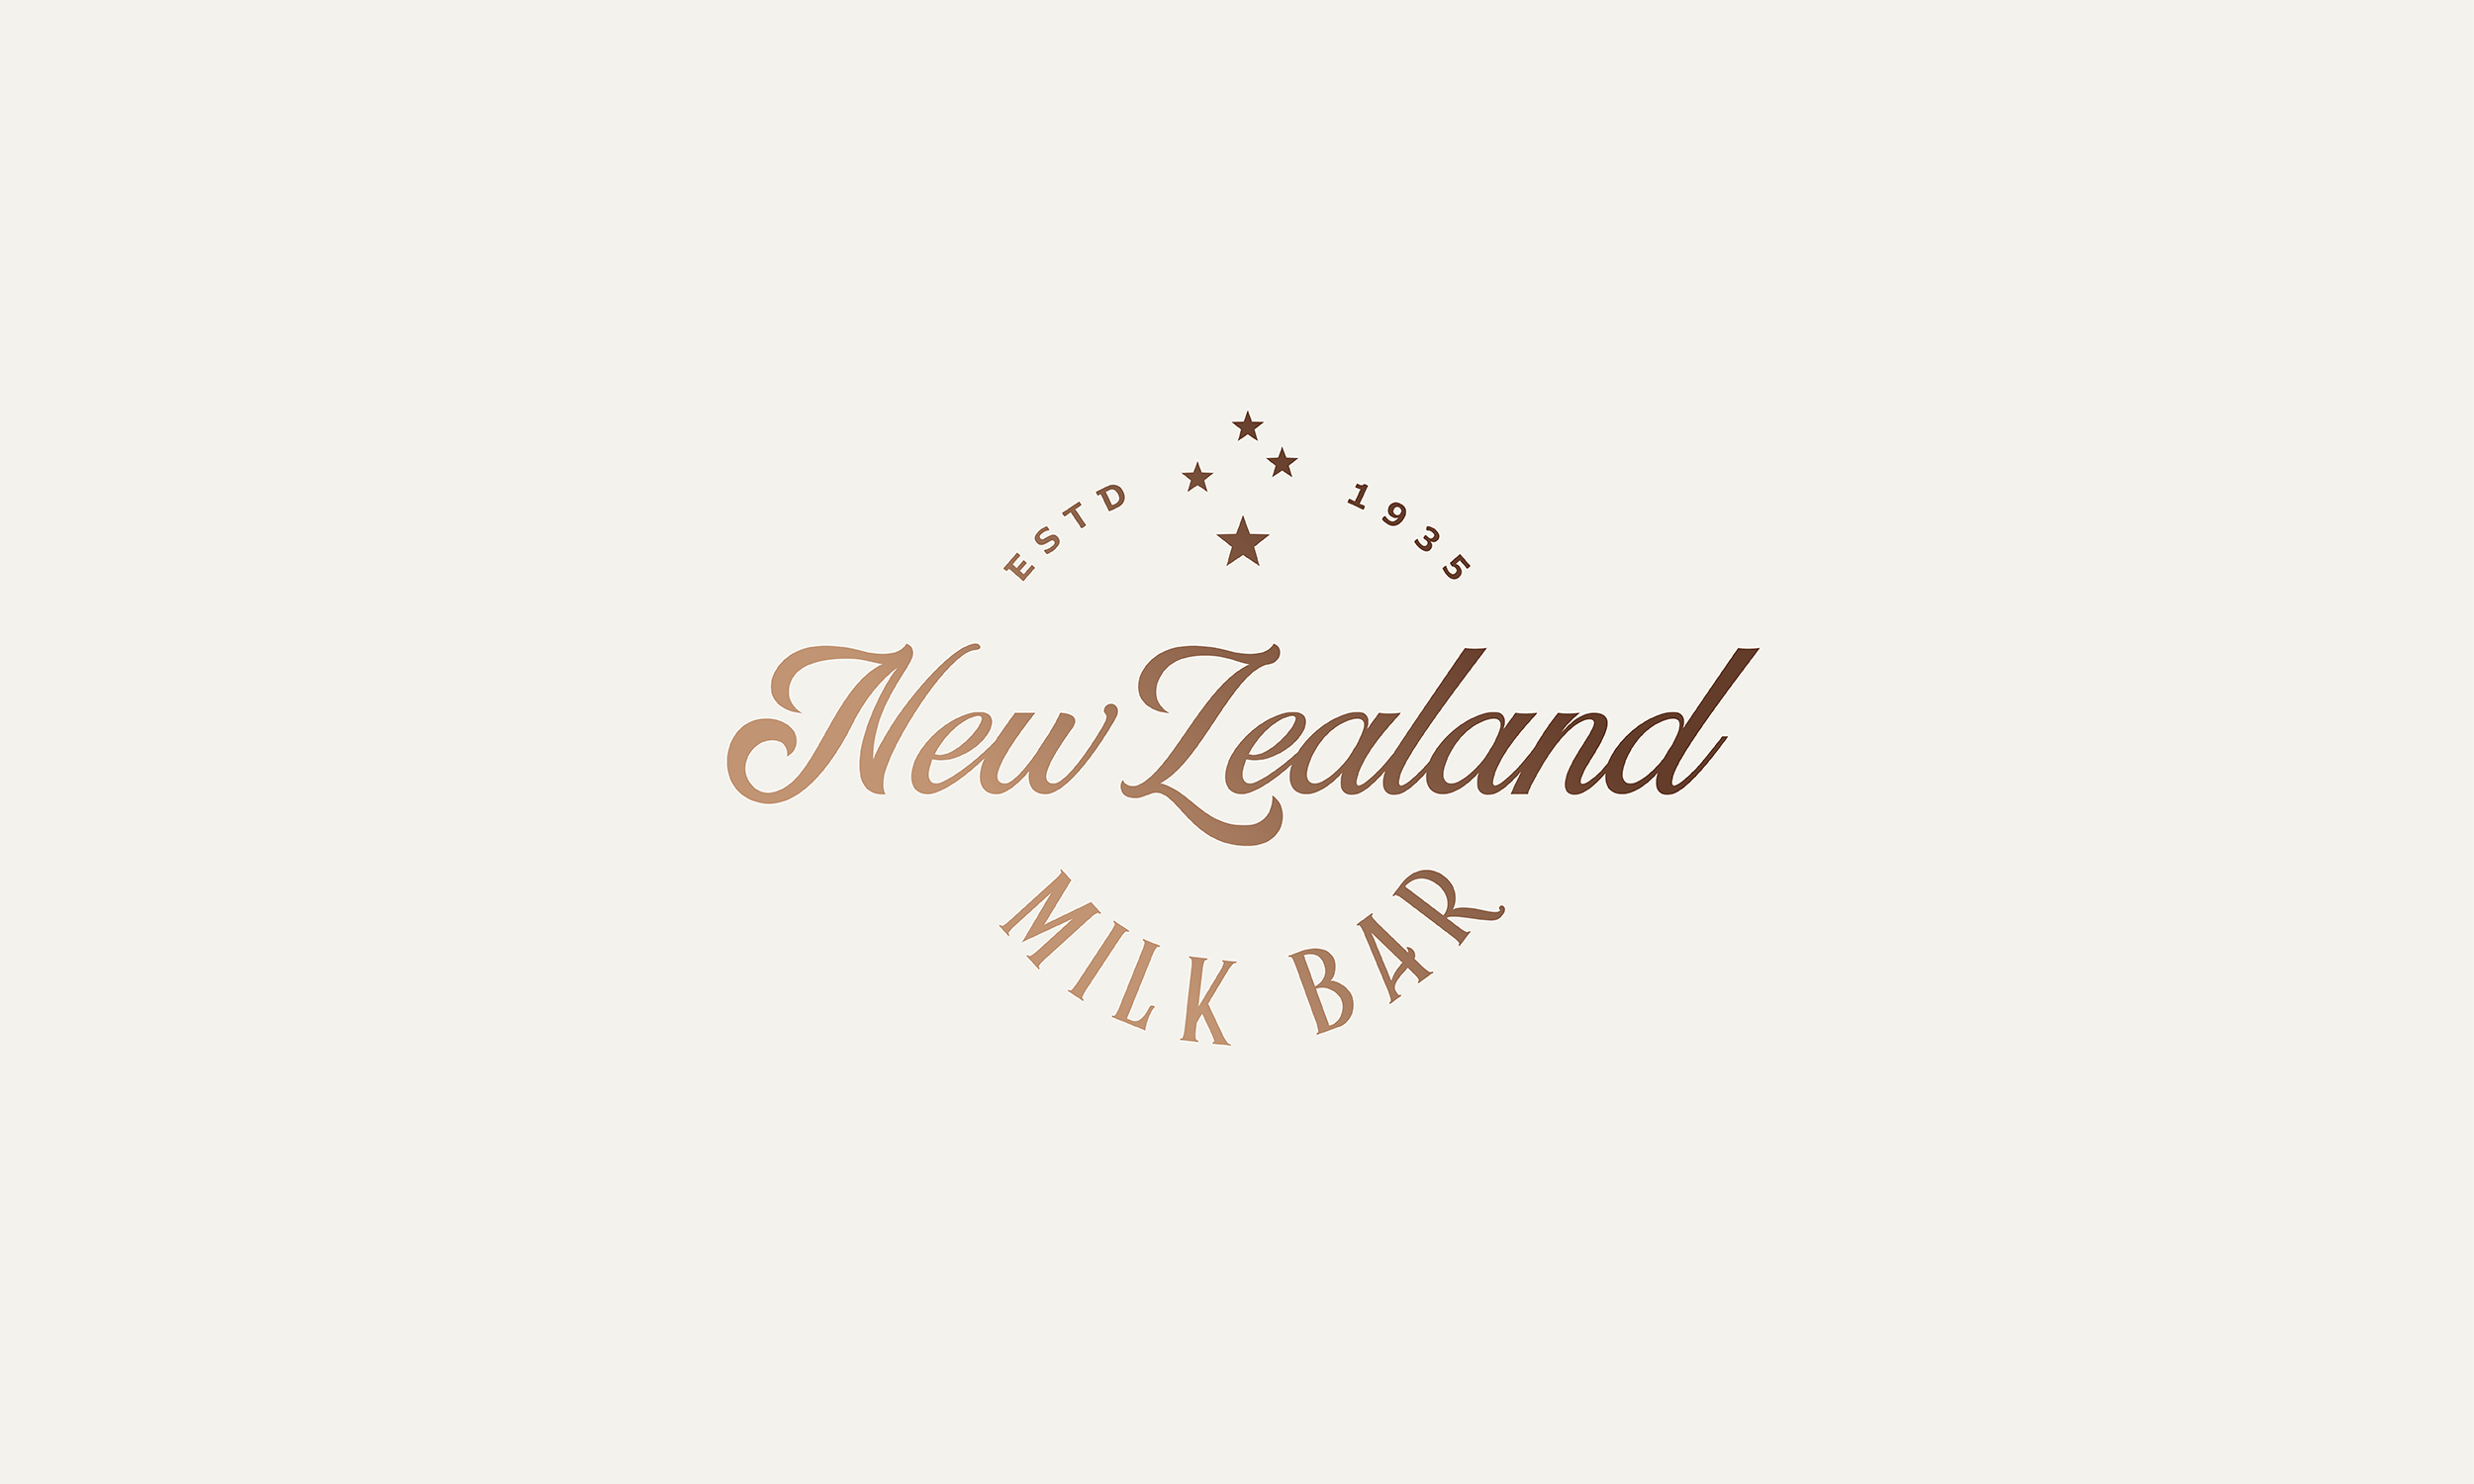 New-Zealand-Milk-Bar-Logo-Design-Brand-Freelance-Graphic-Designer-Studio-Agency-Margate-Kent